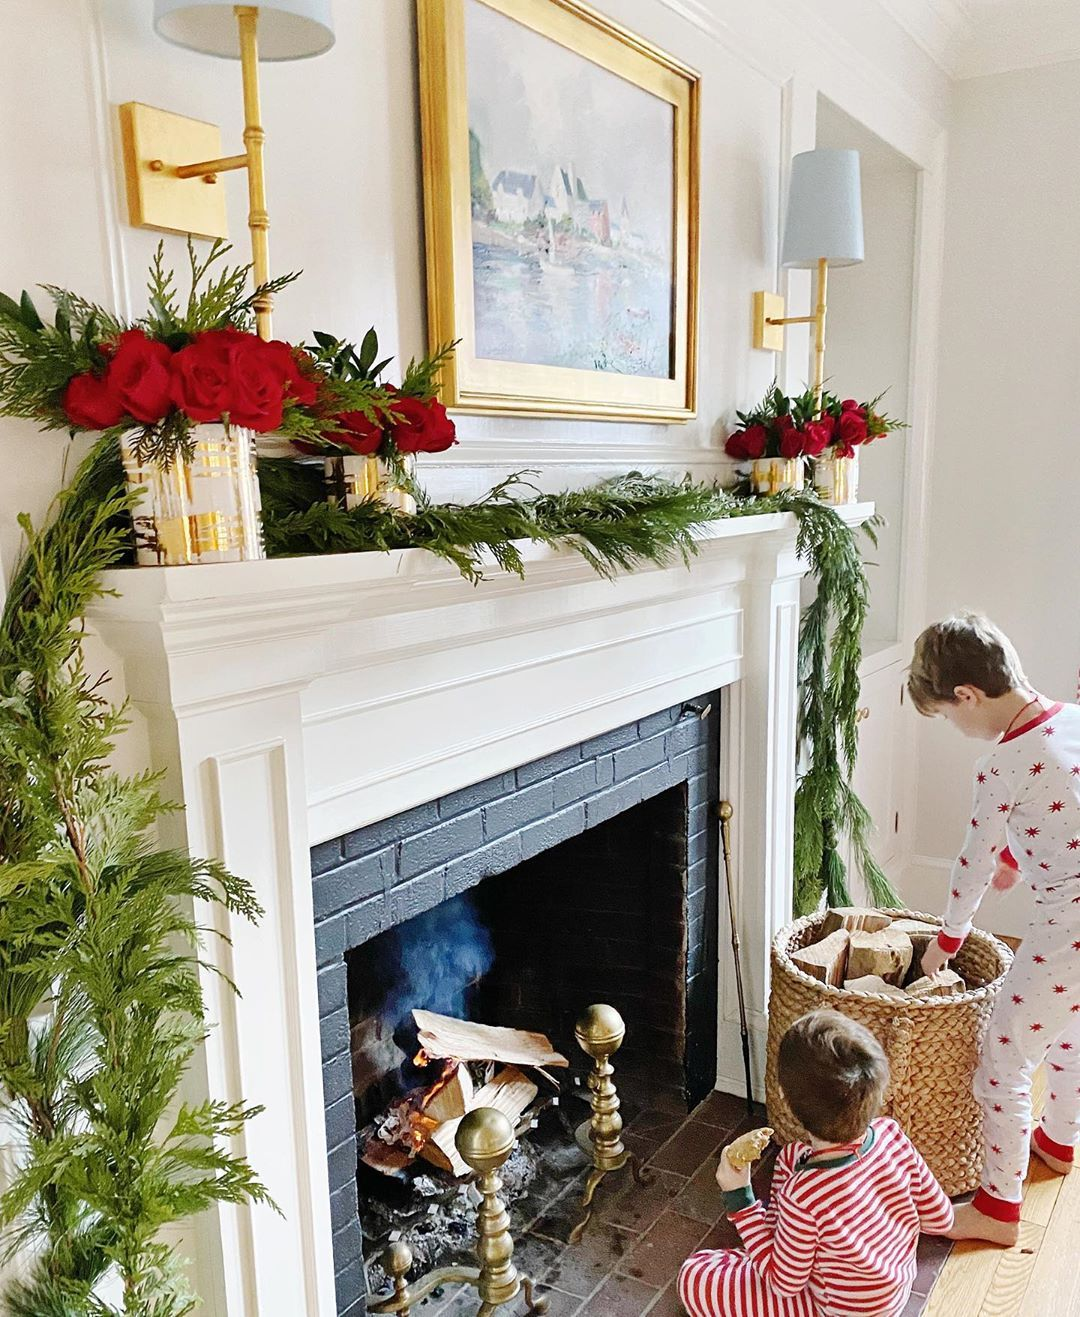 """Grapevine Interiors on Instagram """"Breakfast by the fire"""